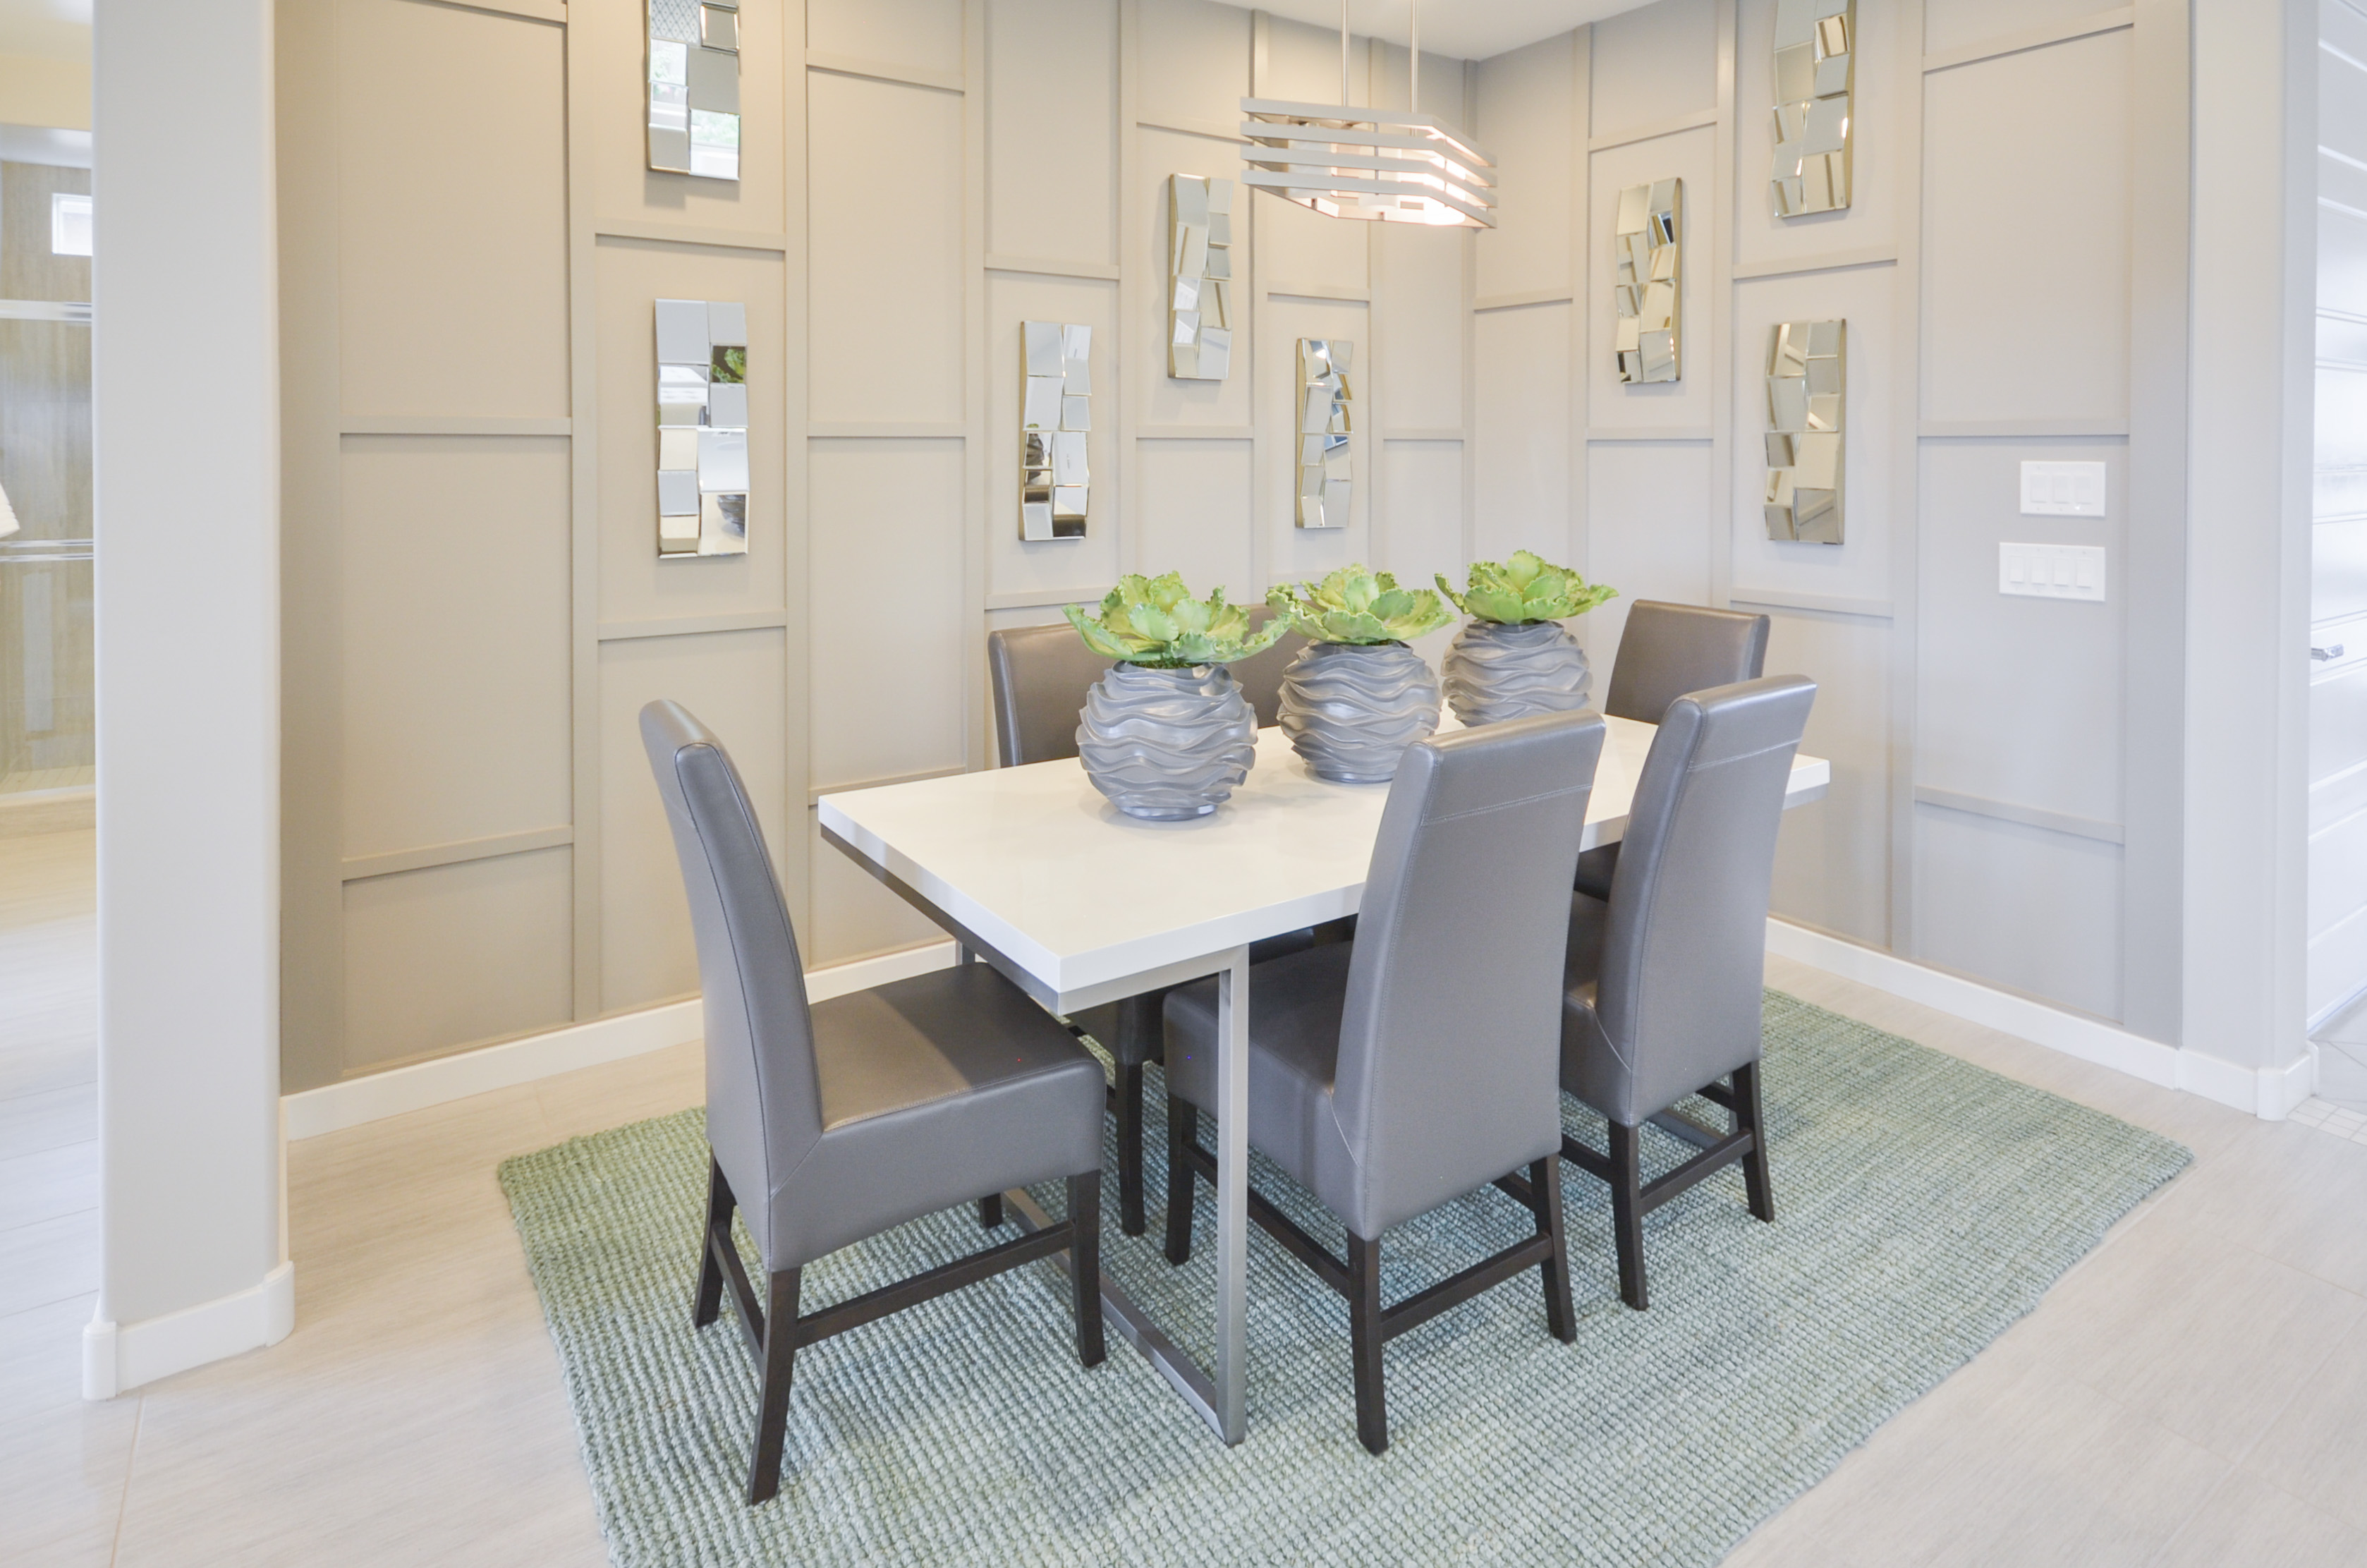 While Not A Formal Dining Room The Area Is Open To And Connected Spacious Kitchen For Easy Entertaining From You Get